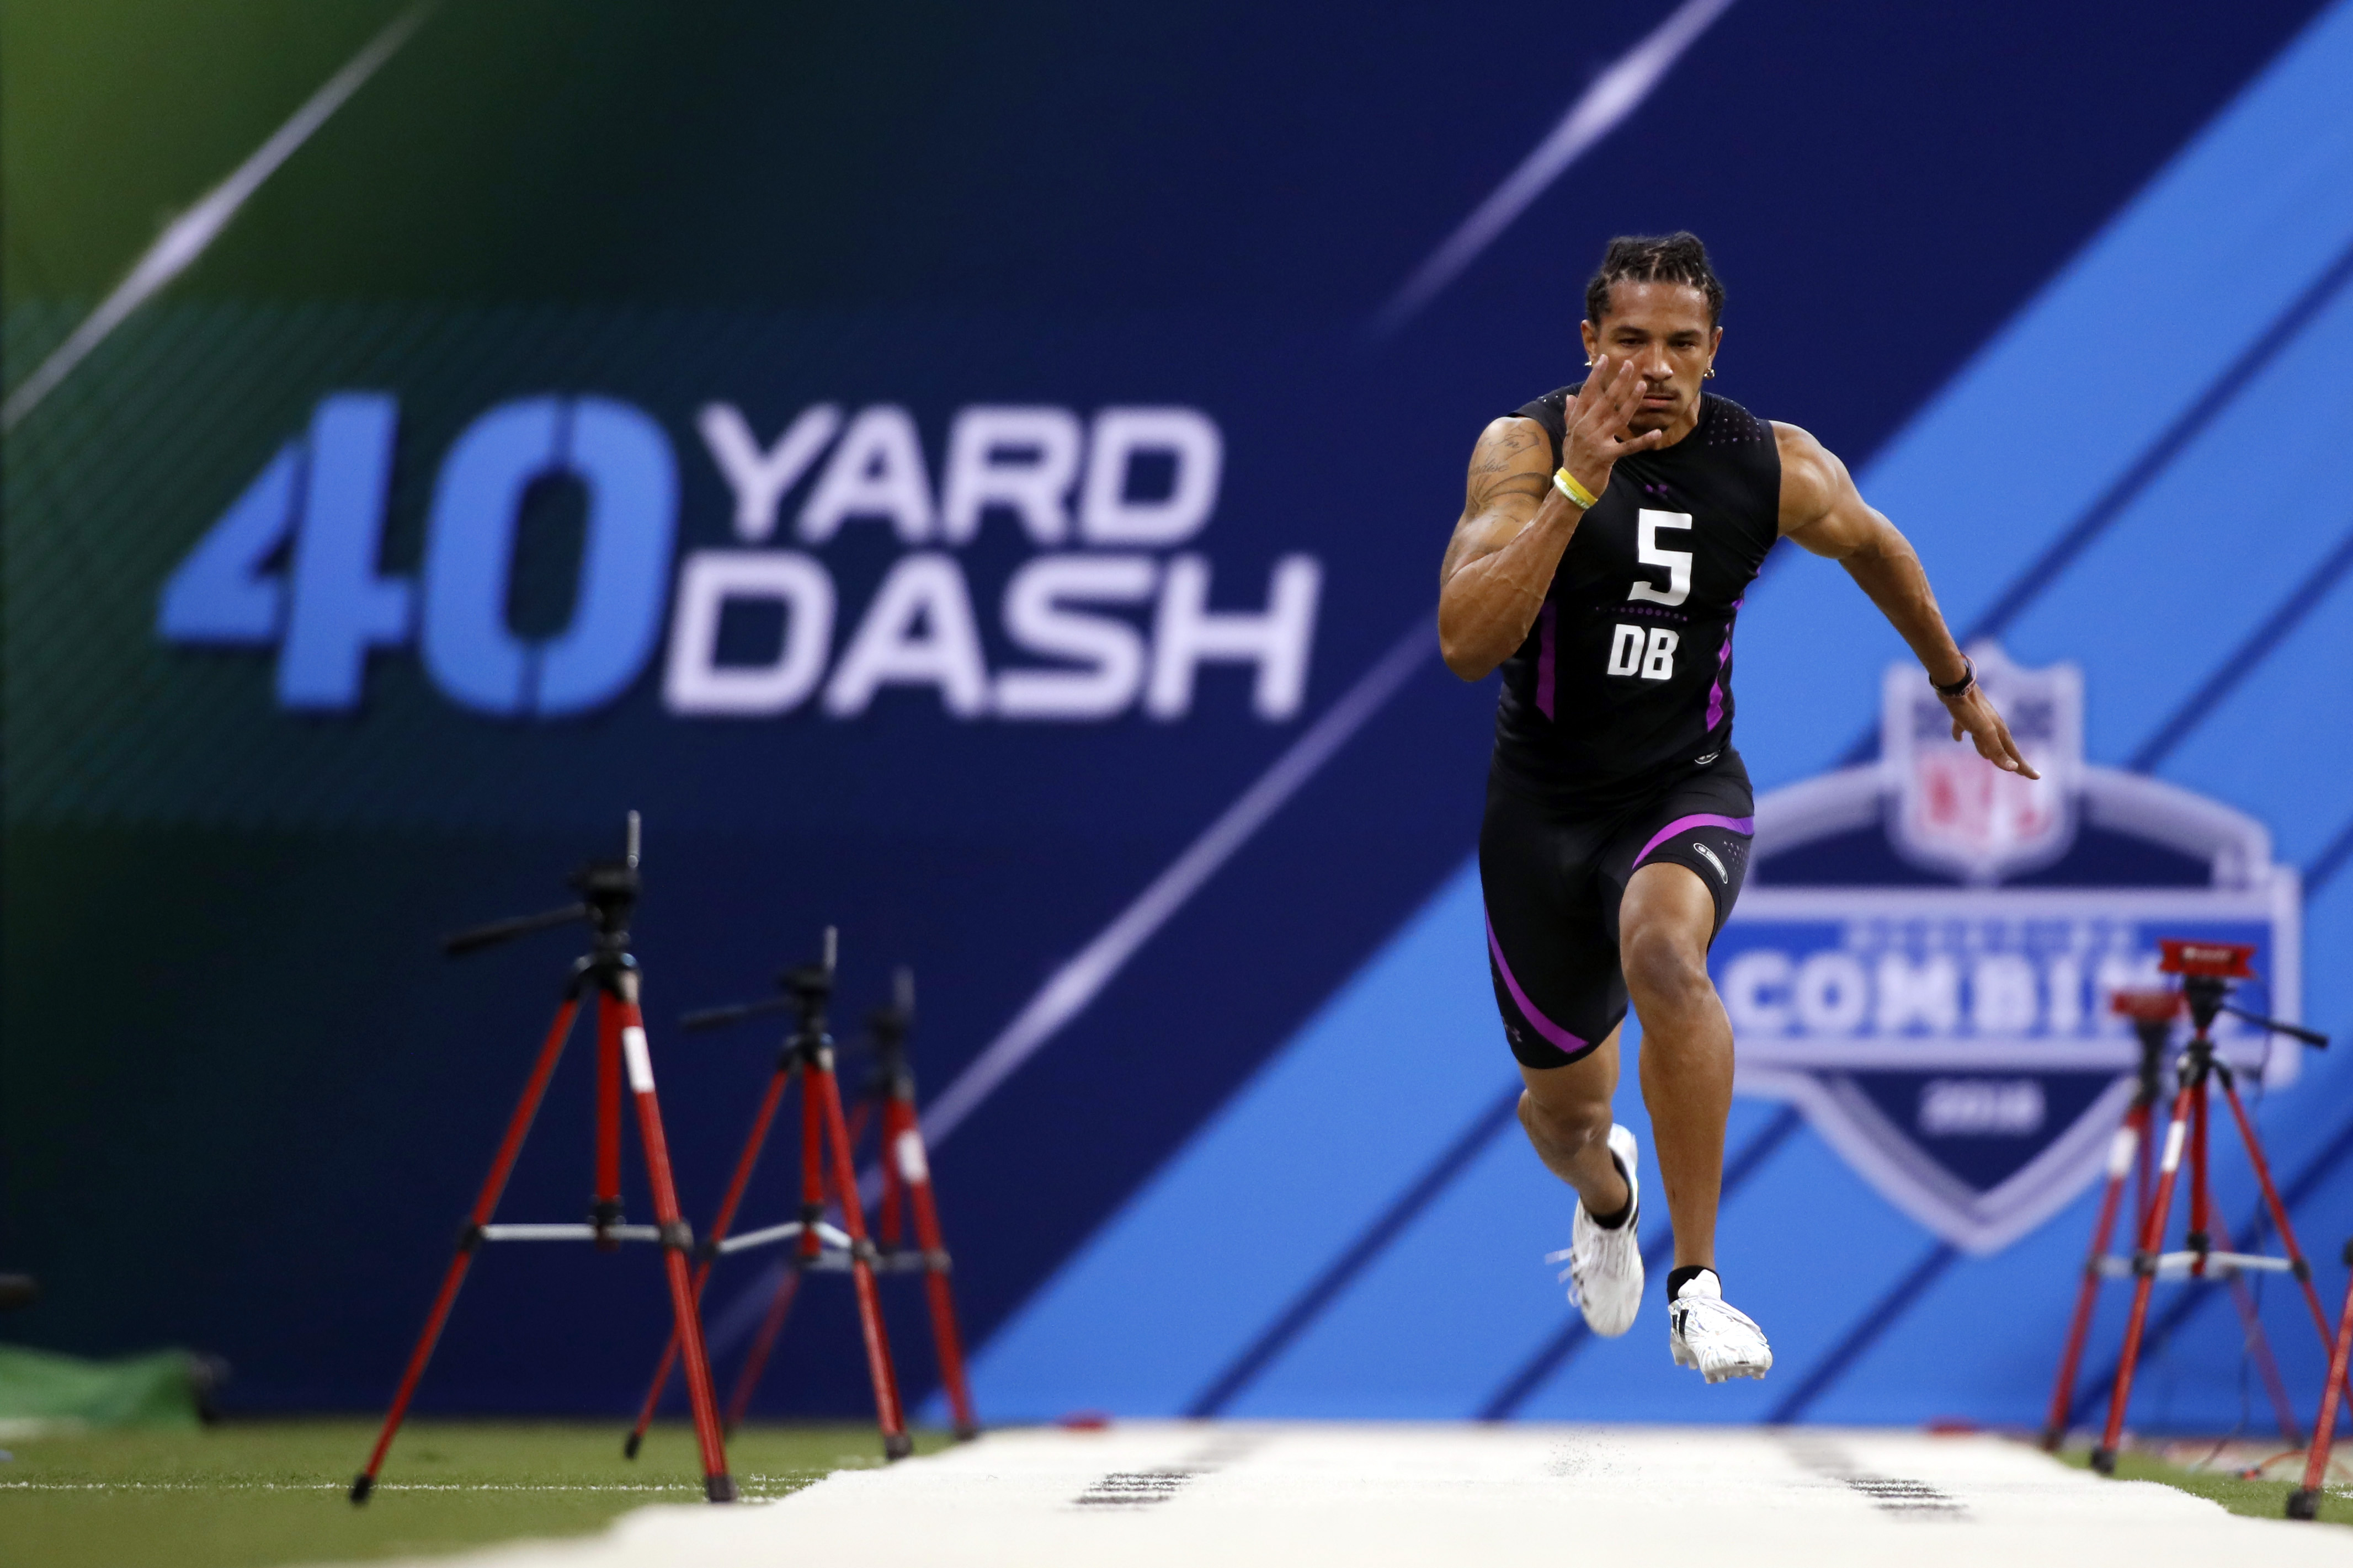 PHOTOS: Defensive backs work out at 2018 NFL Scouting Combine